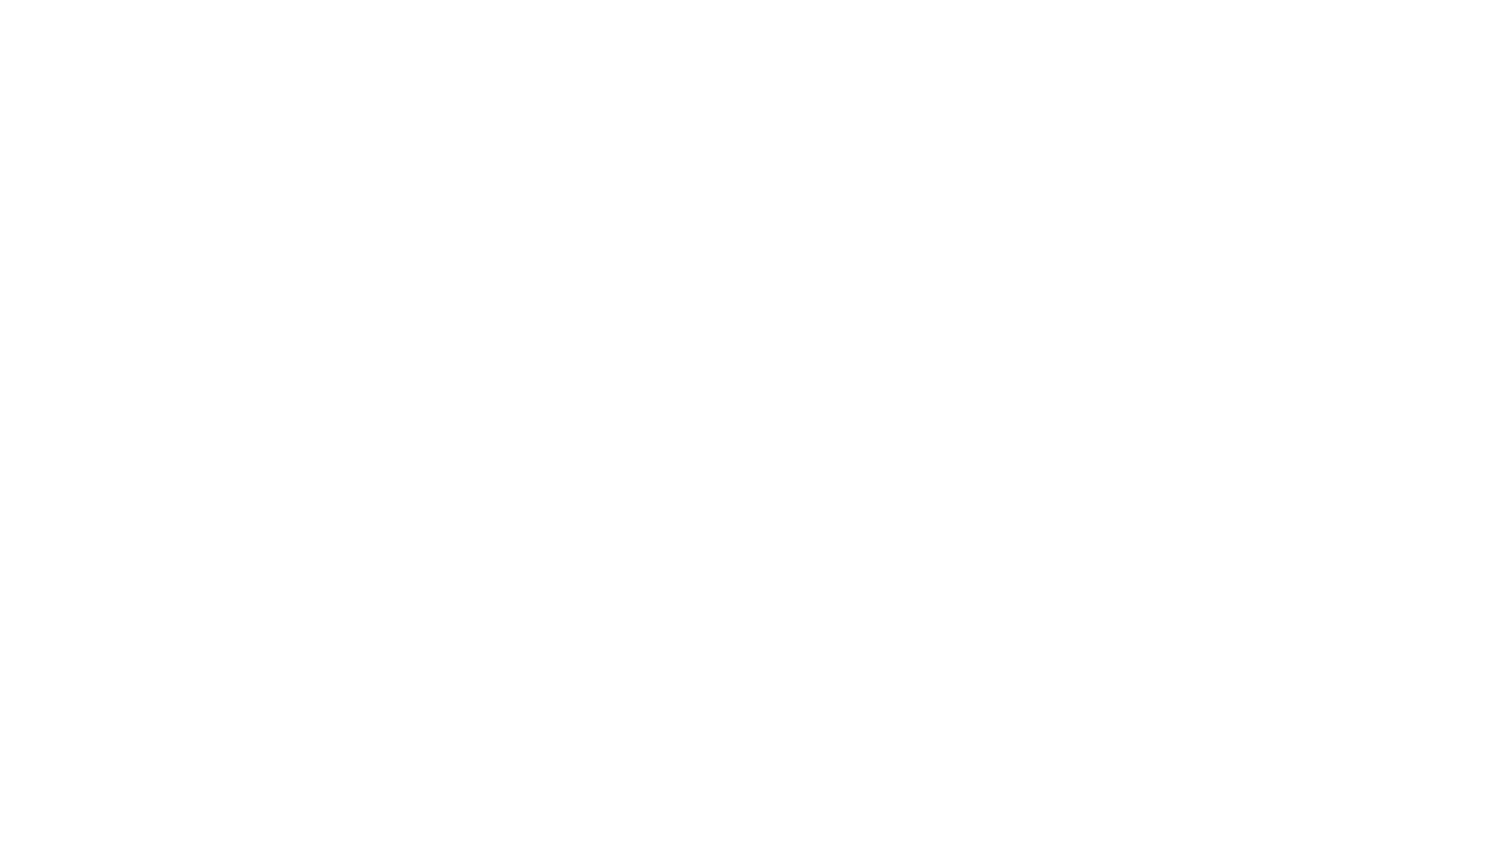 Grace Capital Church